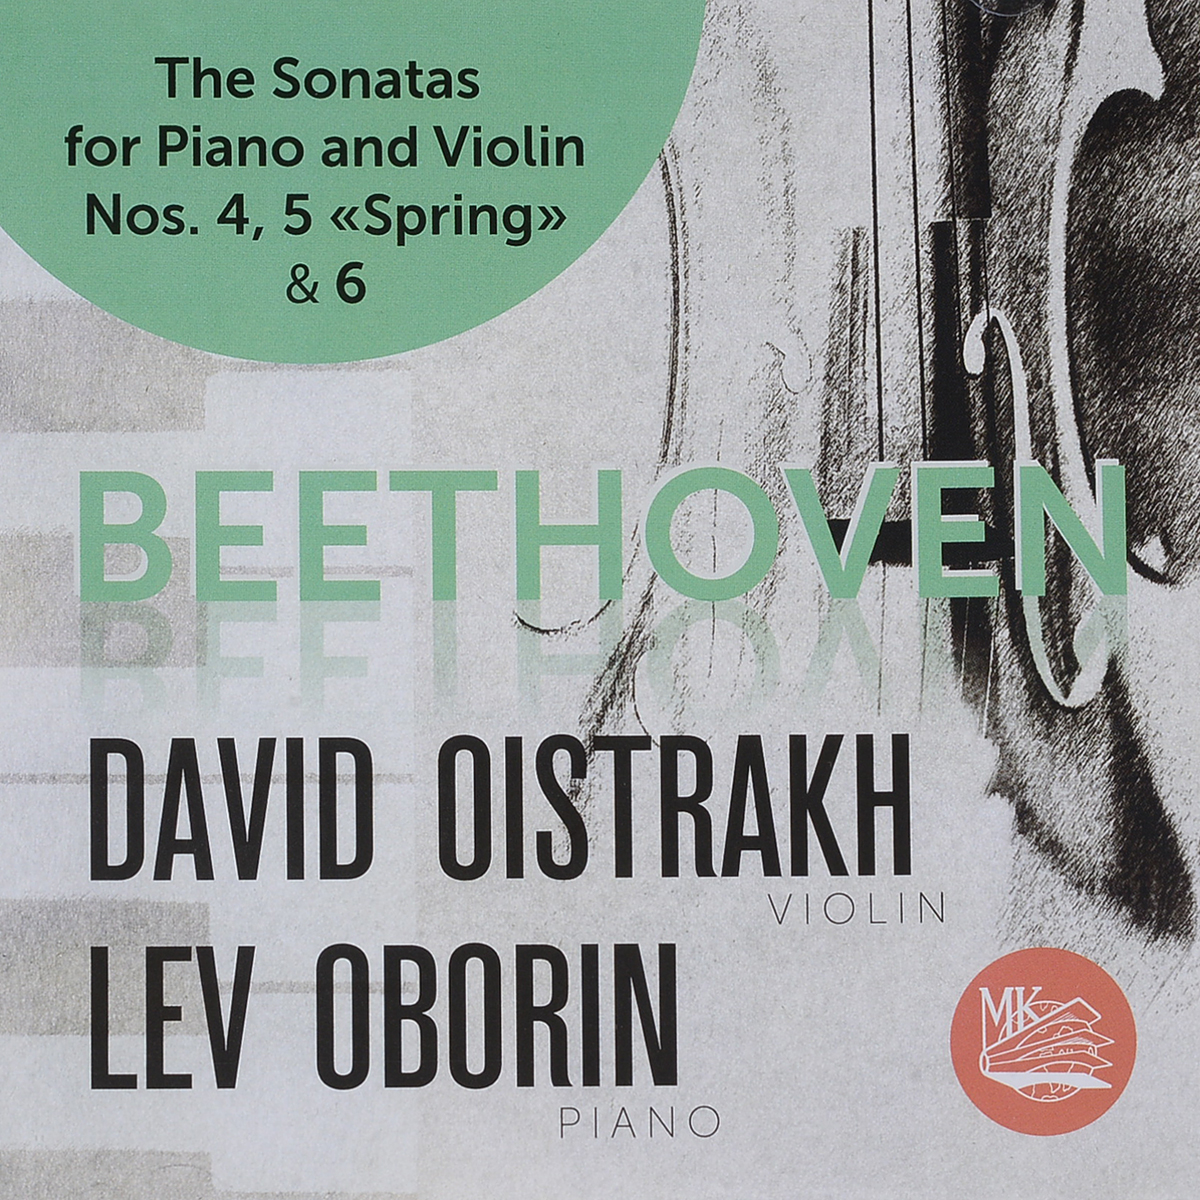 Давид Ойстрах,Лев Оборин David Oistrakh. Lev Oborin. Beethoven. The Sonatas For Piano And Violin No. 4, 5 Spring & 6 free case 4 4 size 910m master viola bow nice pernambuco stick high quality ebony frog and horsehair straight violin accessories